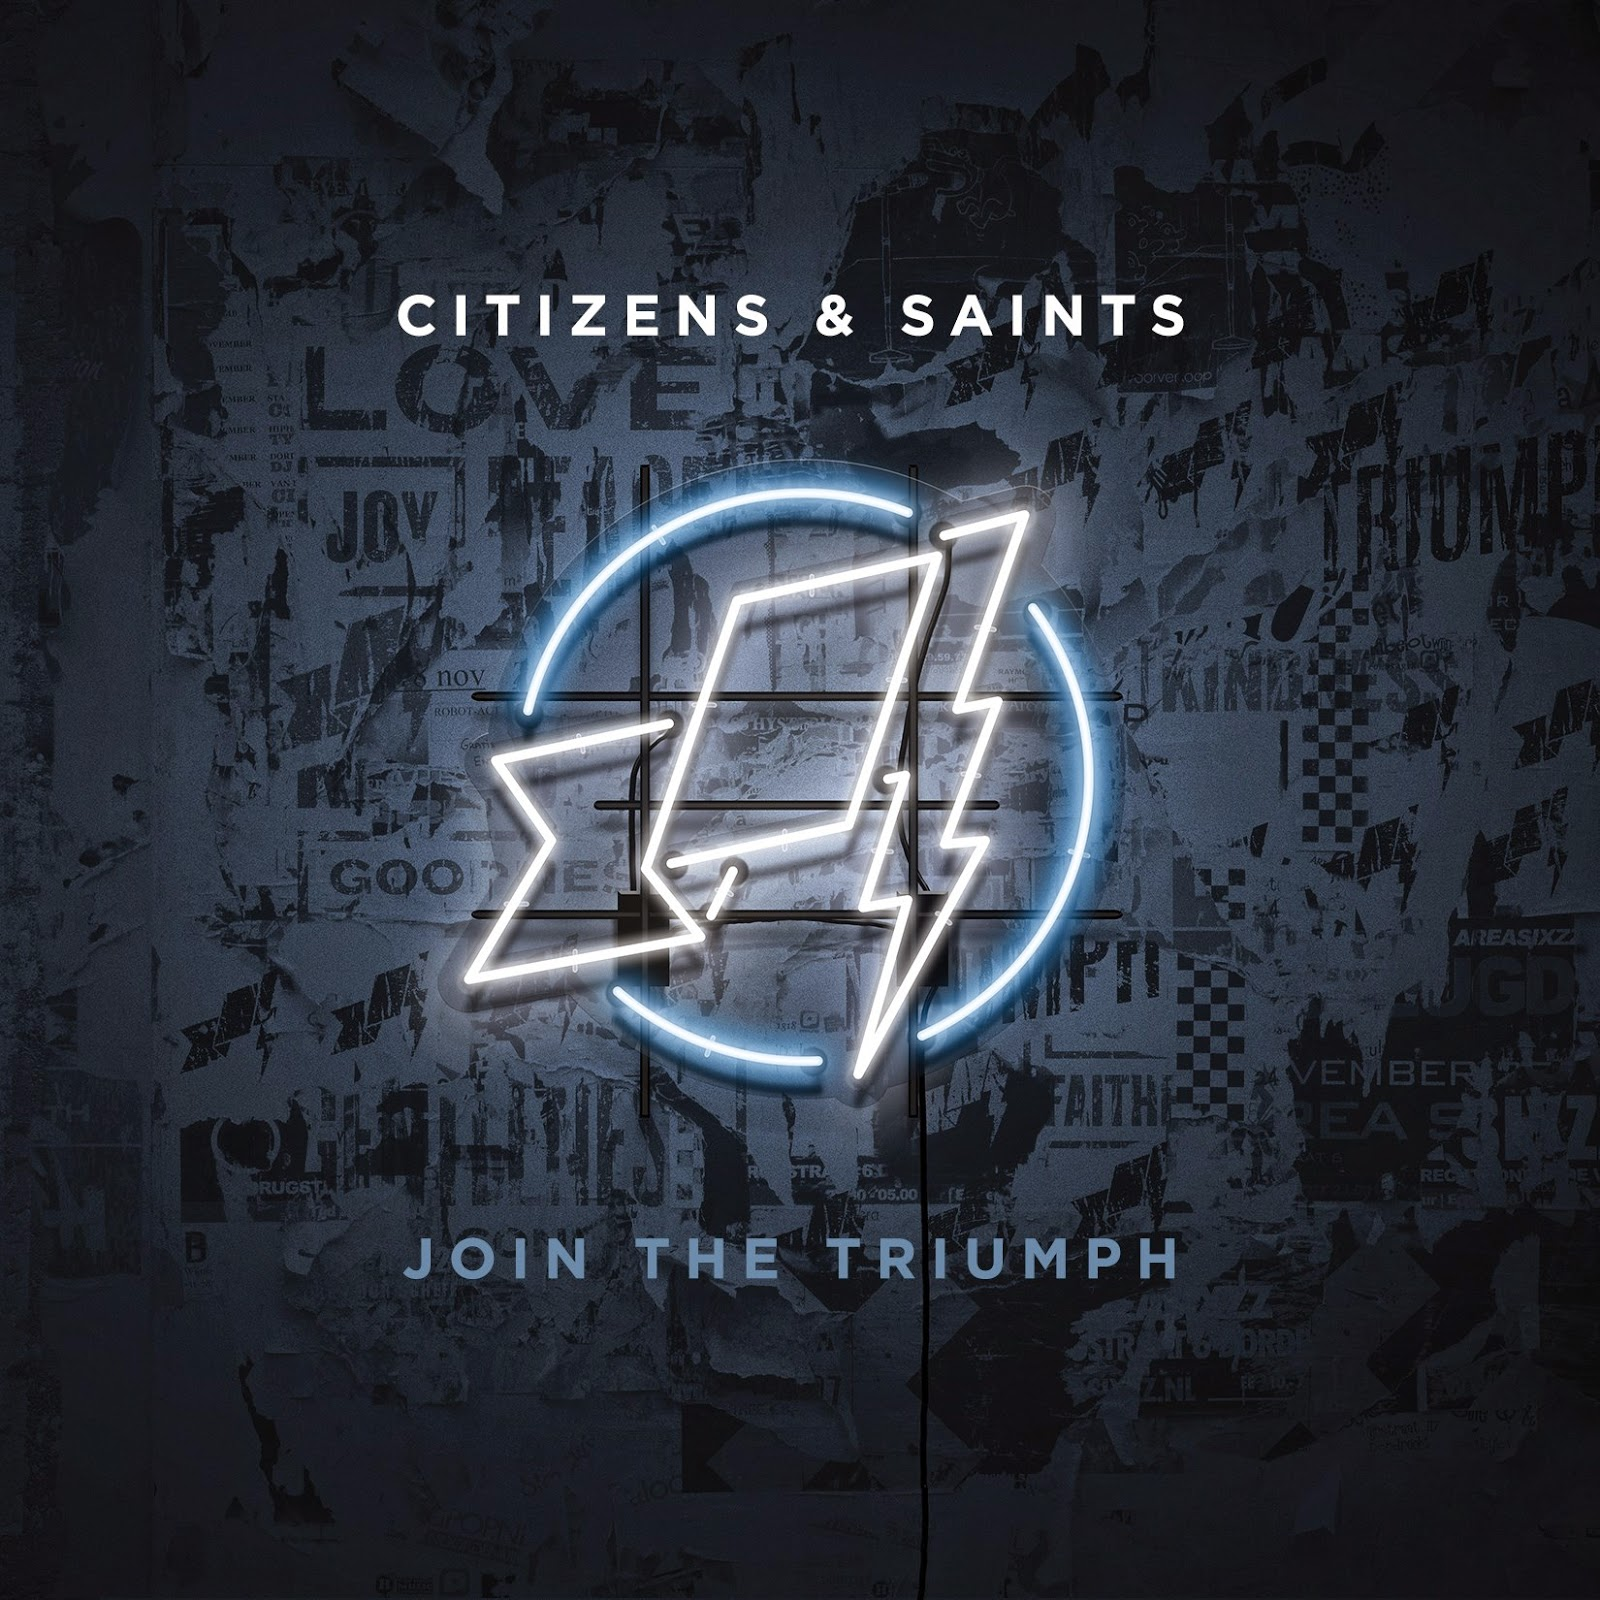 Citizens & Saints - Join the Triumph (2014) English Christian Album Download